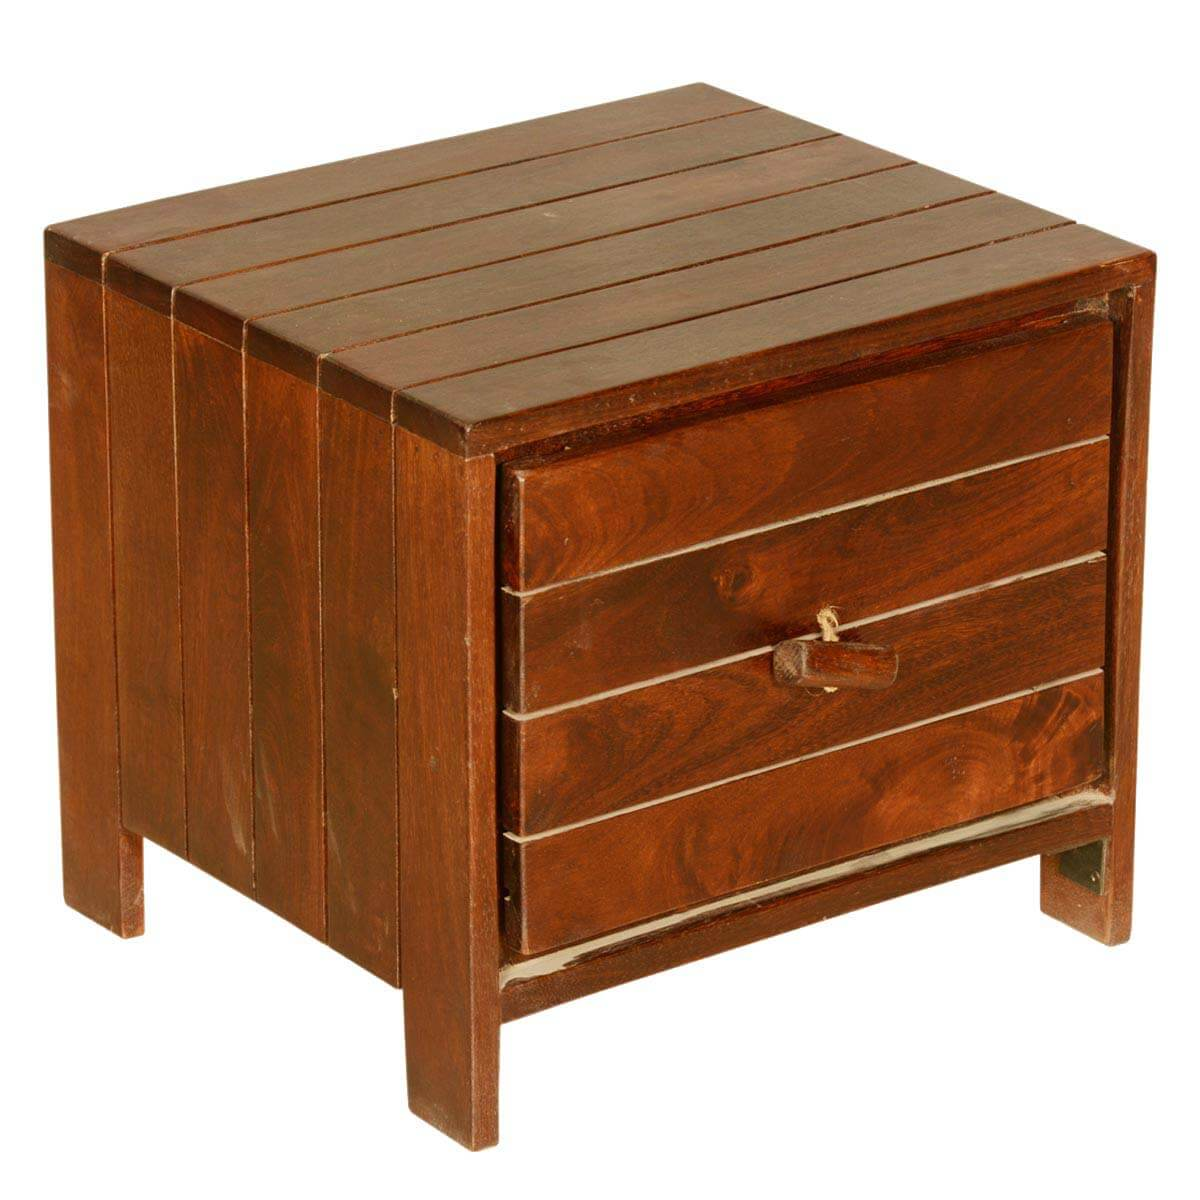 Wood Cube End Table Parallel Lines Teak Wood Standing Cube File Cabinet End Table